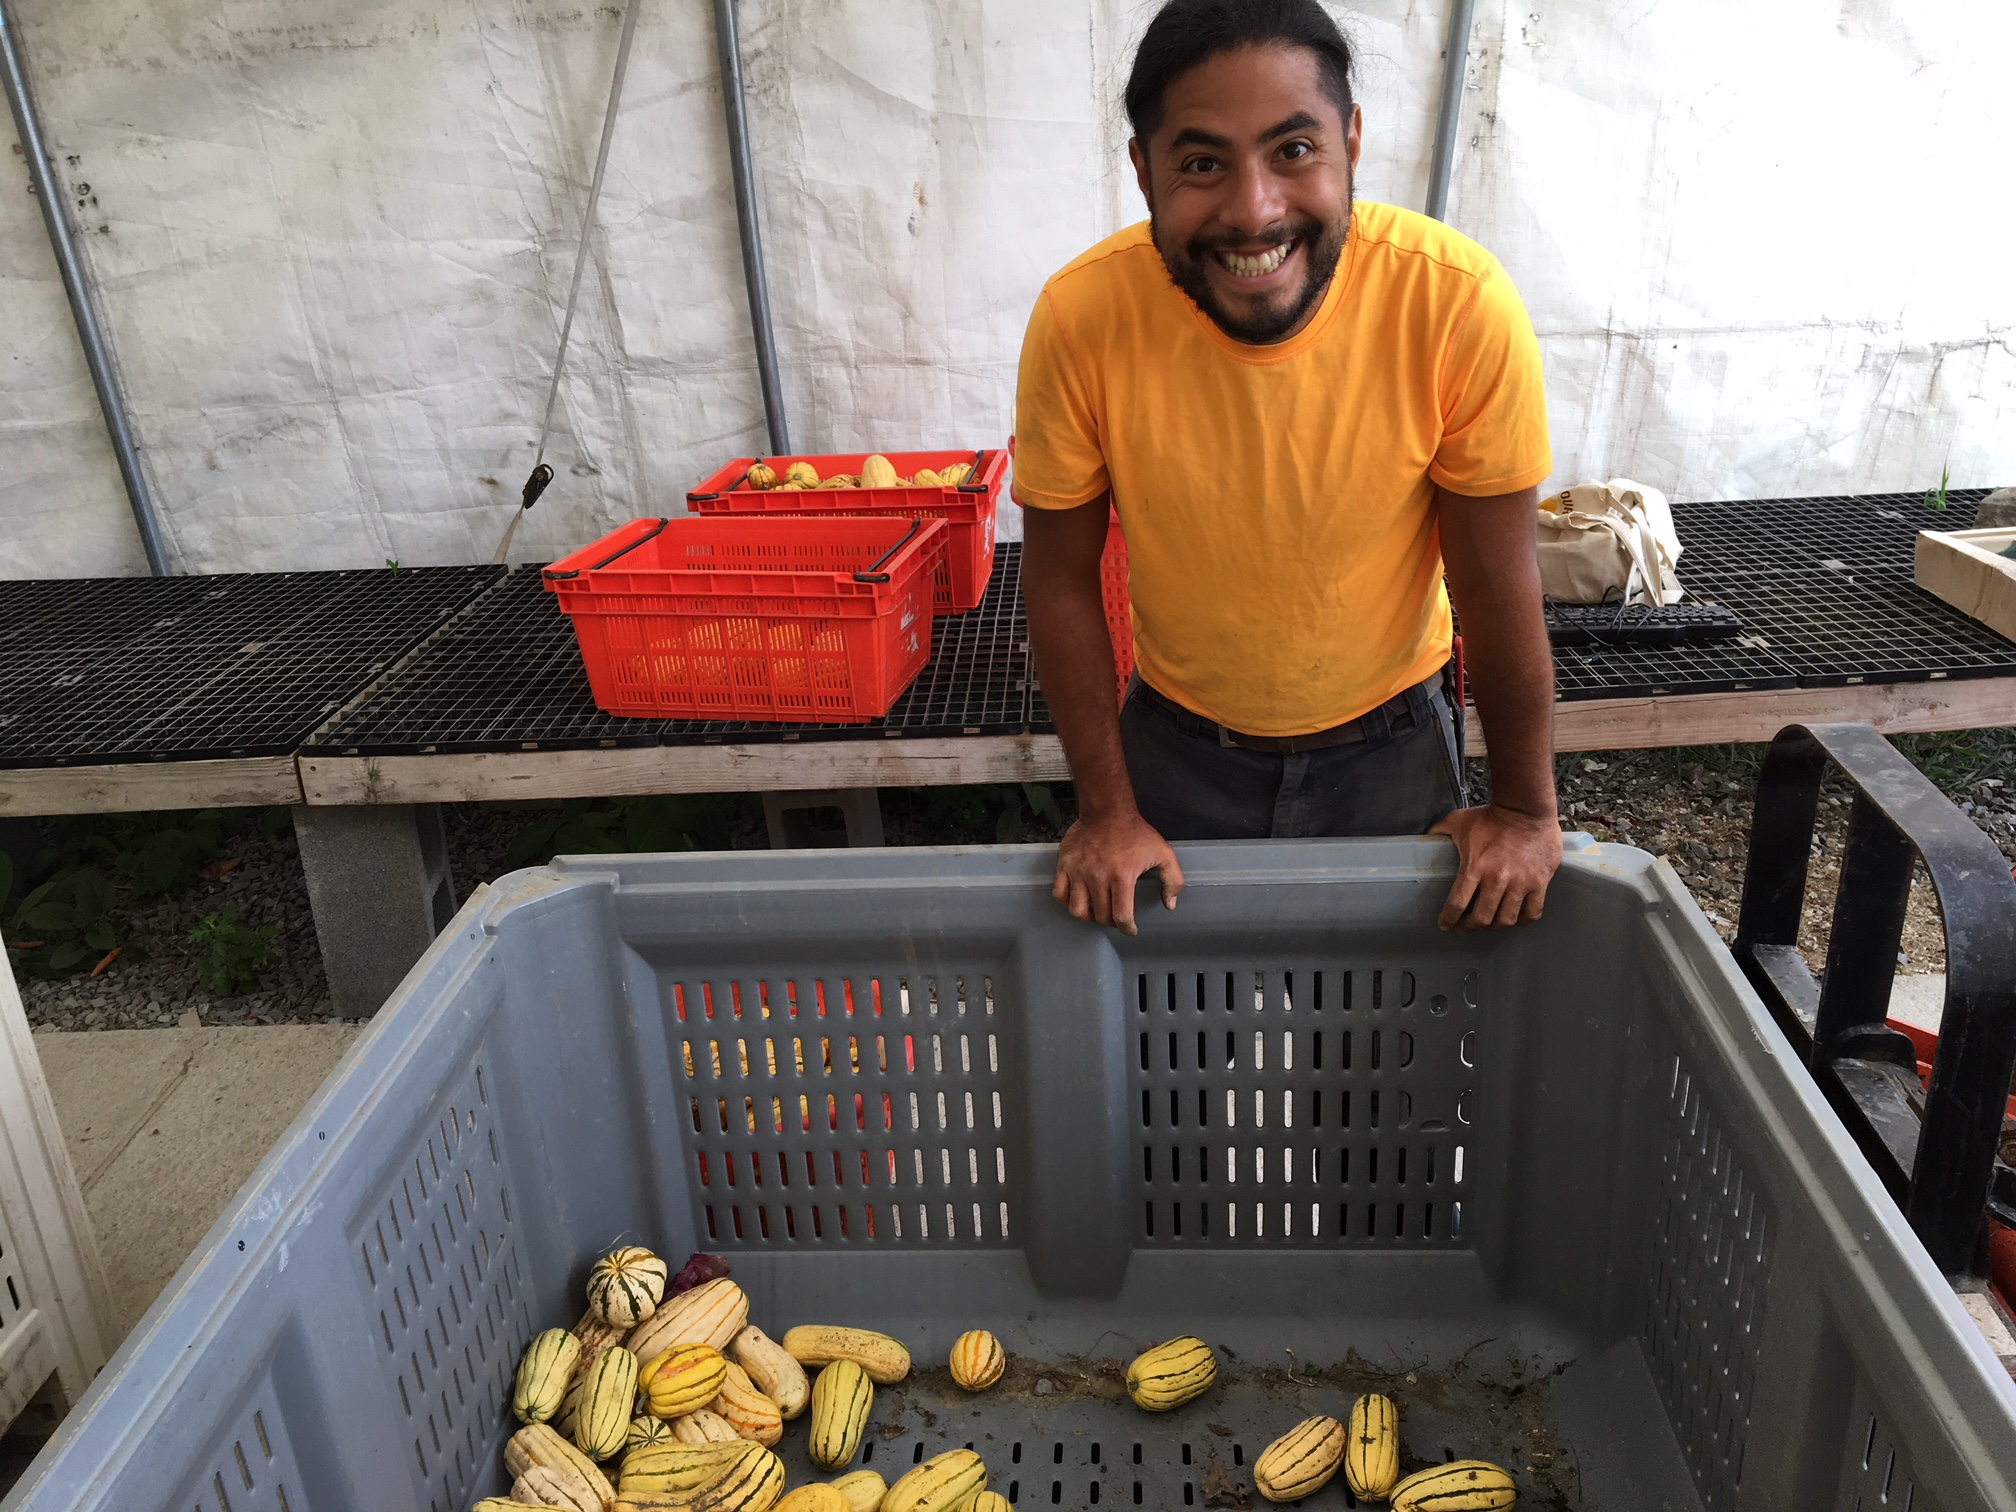 German getting delicata ready for distribution